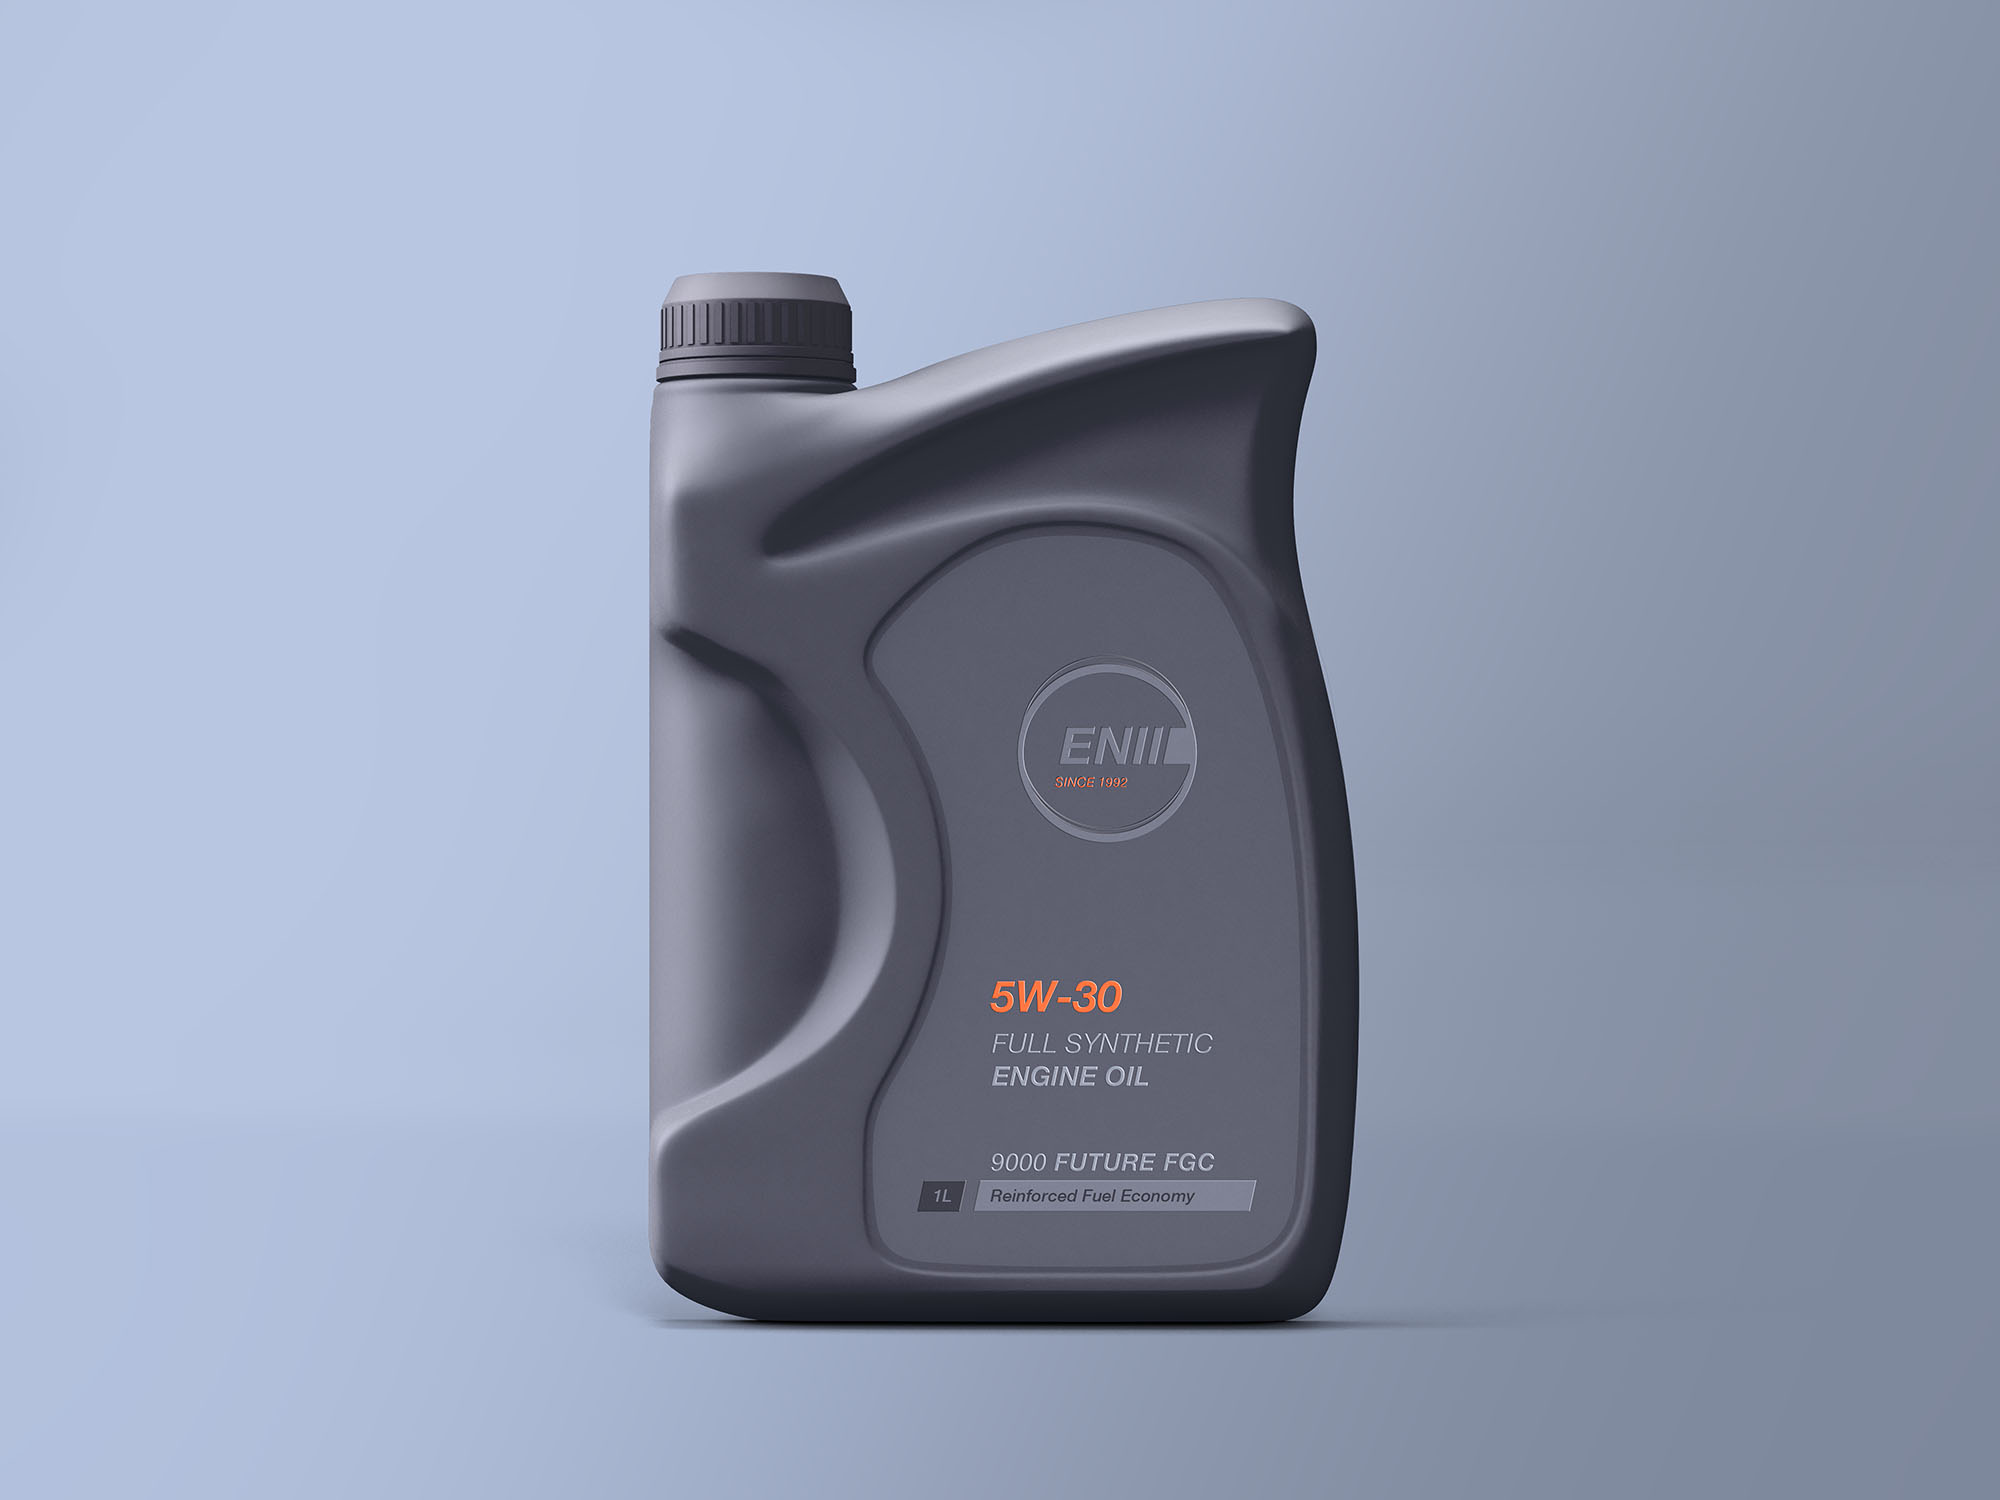 Free Engine Oil Bottle Mockup